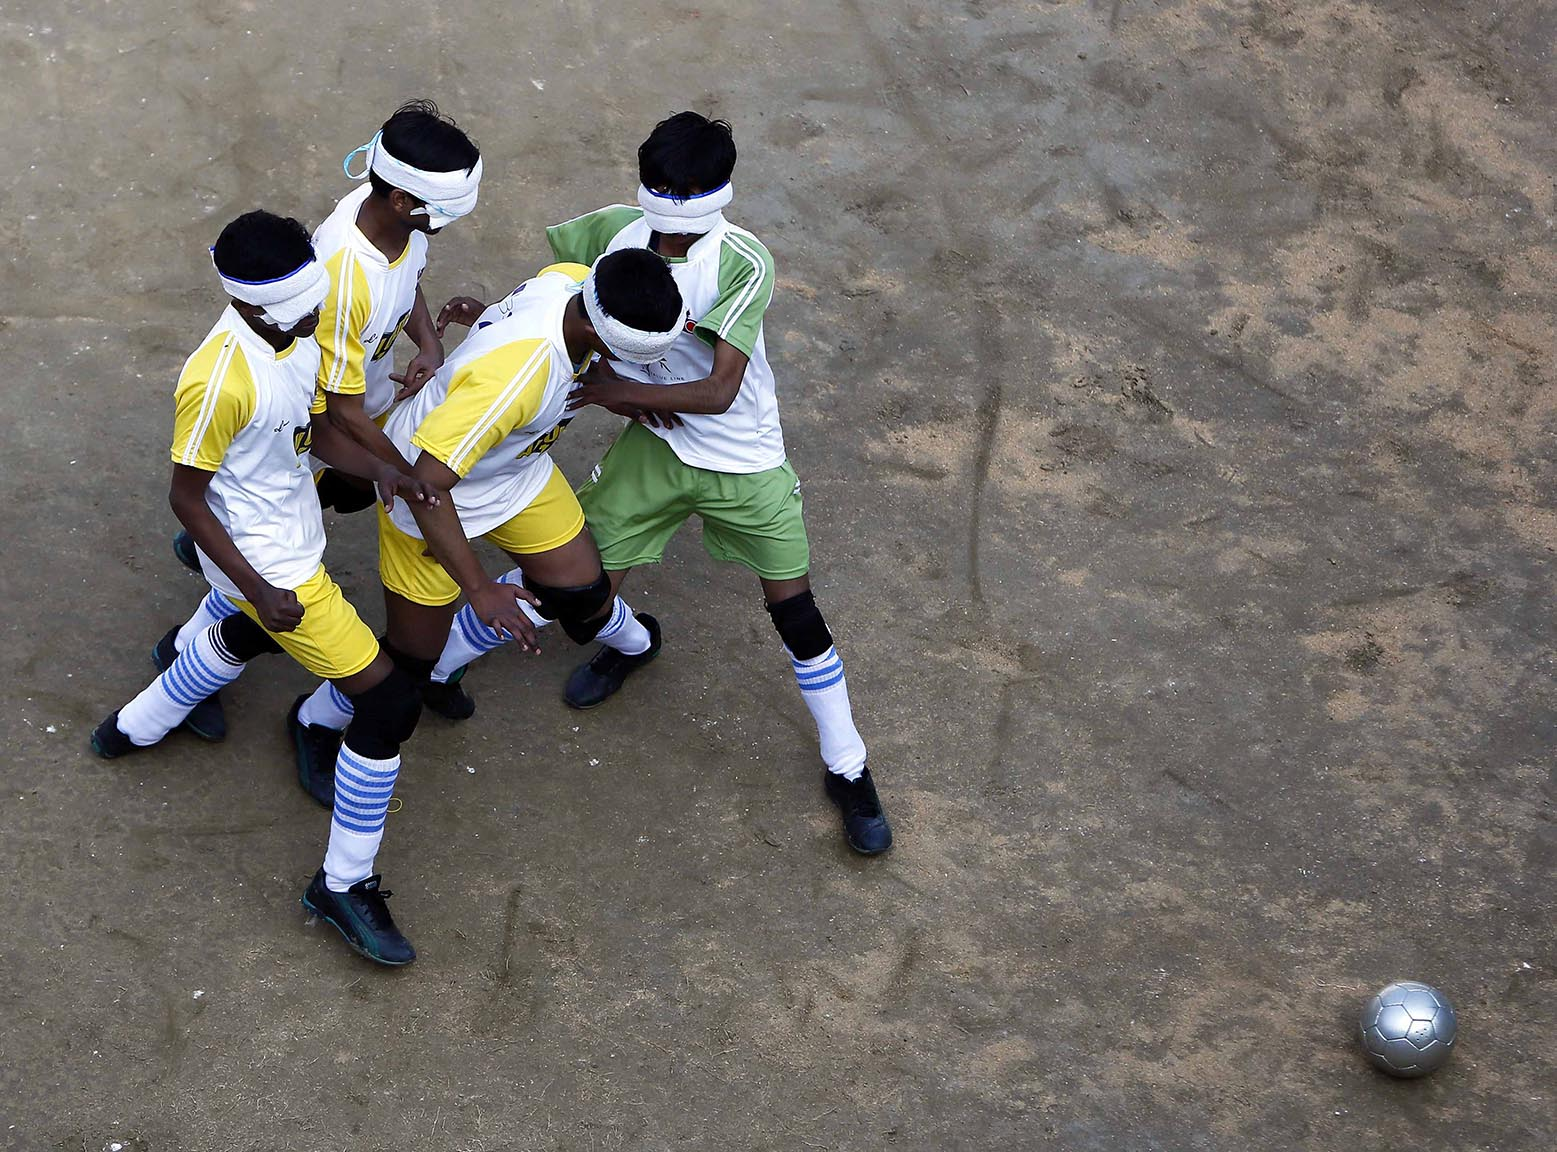 Visually impaired students of a school for the blind fight for the ball during a soccer match inside their school in New Delhi